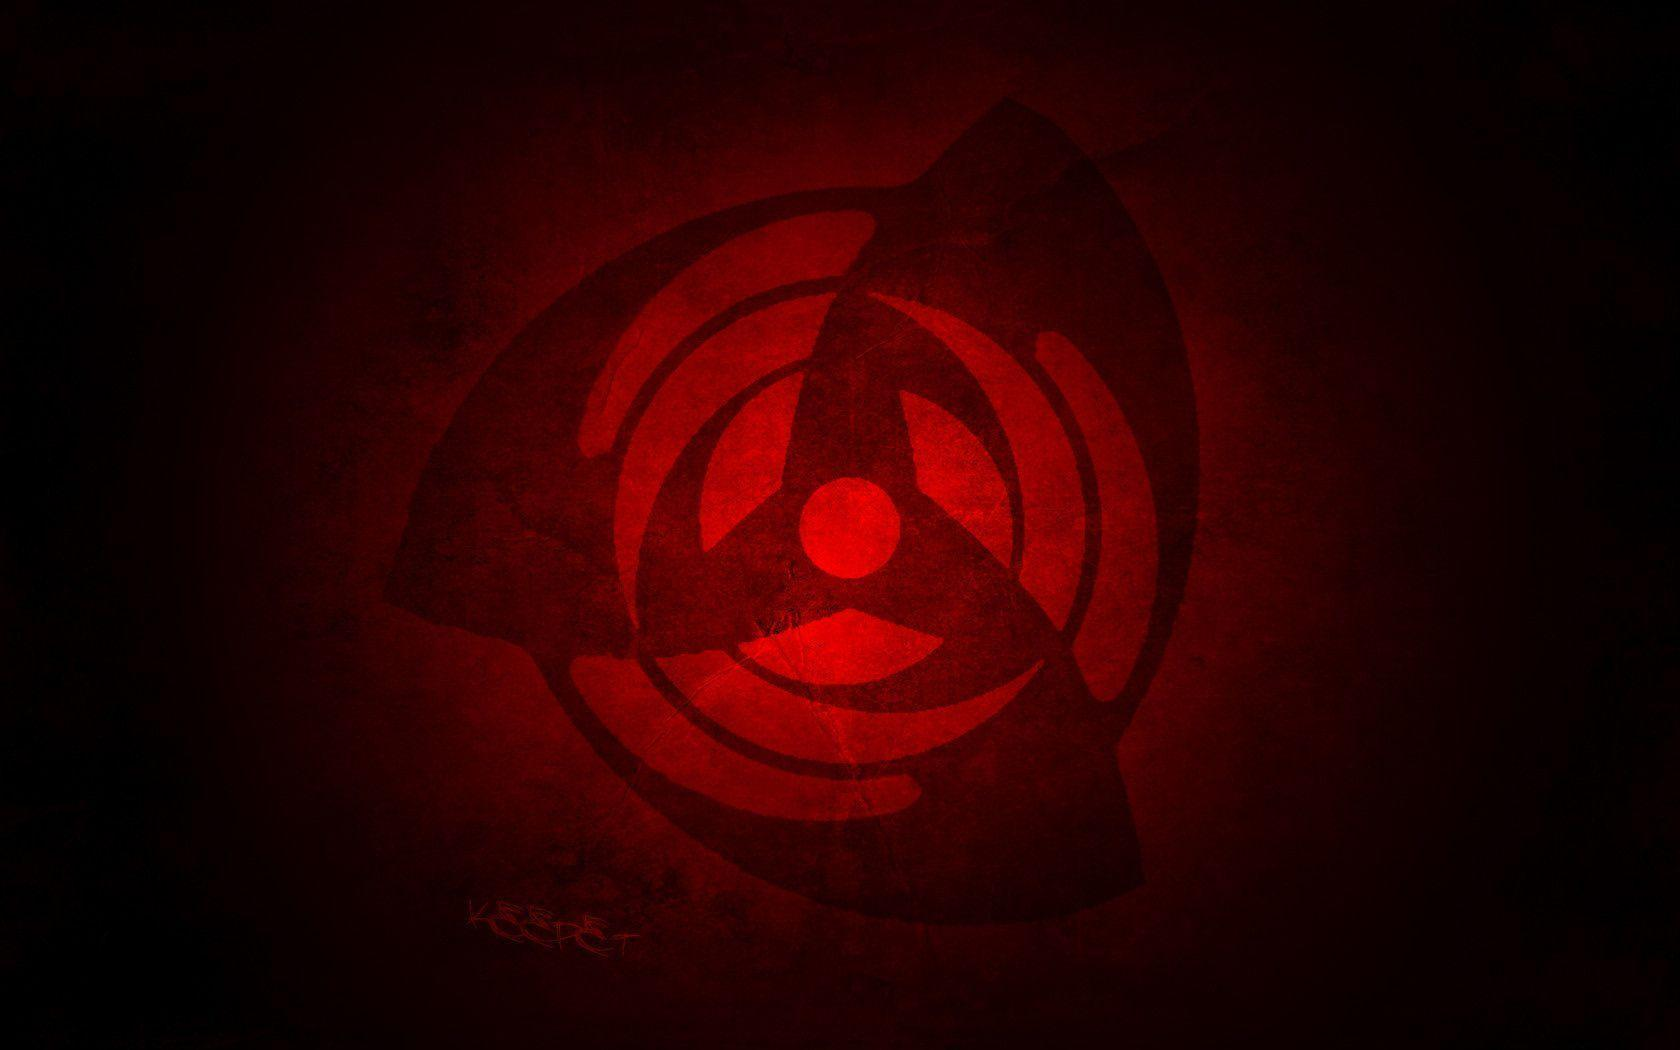 Wallpapers For Mangekyou Sharingan Wallpaper Hd